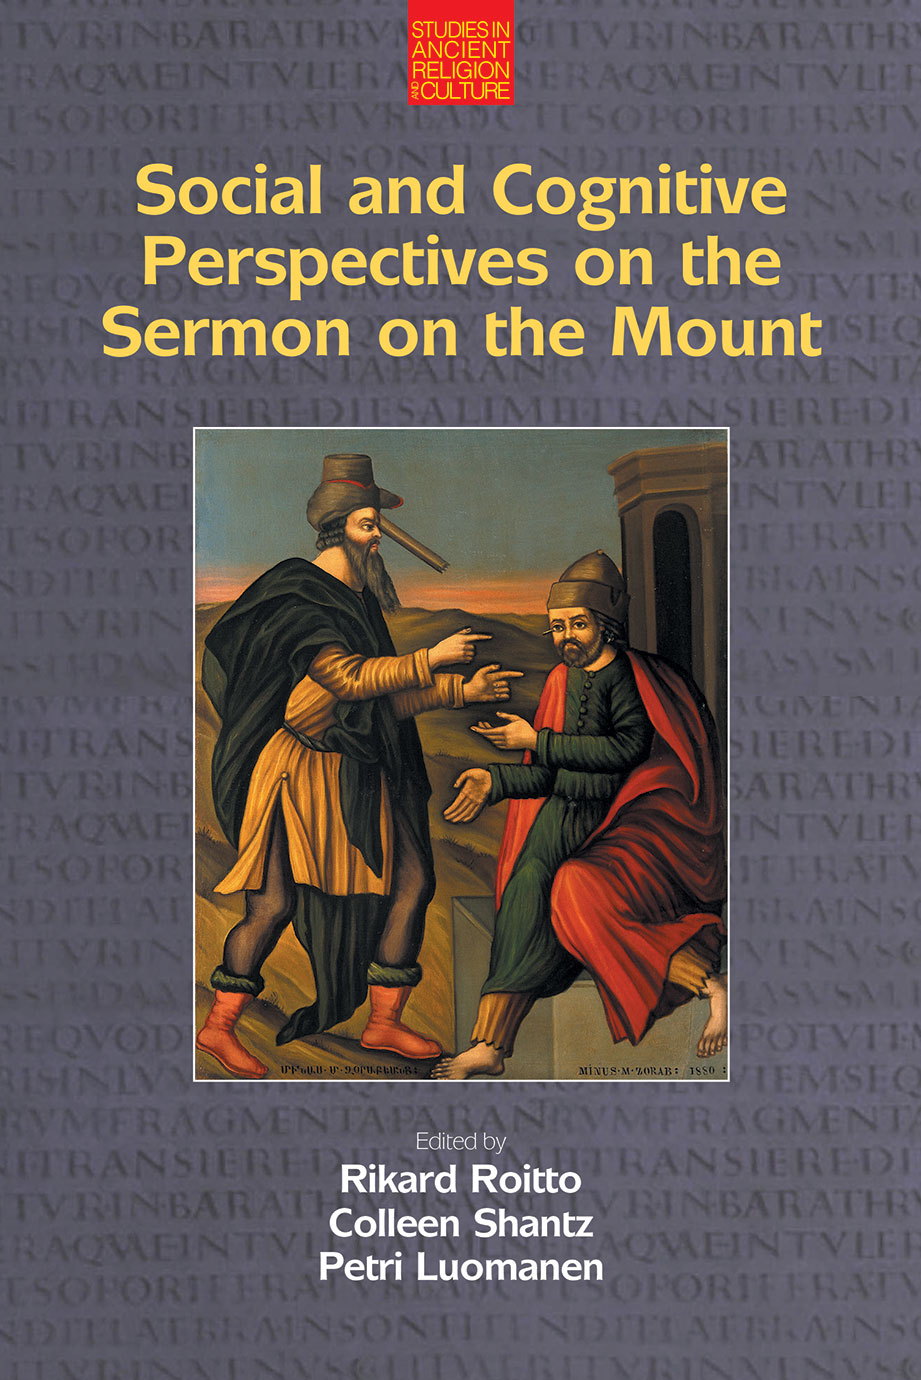 Social and Cognitive Perspectives on the Sermon on the Mount